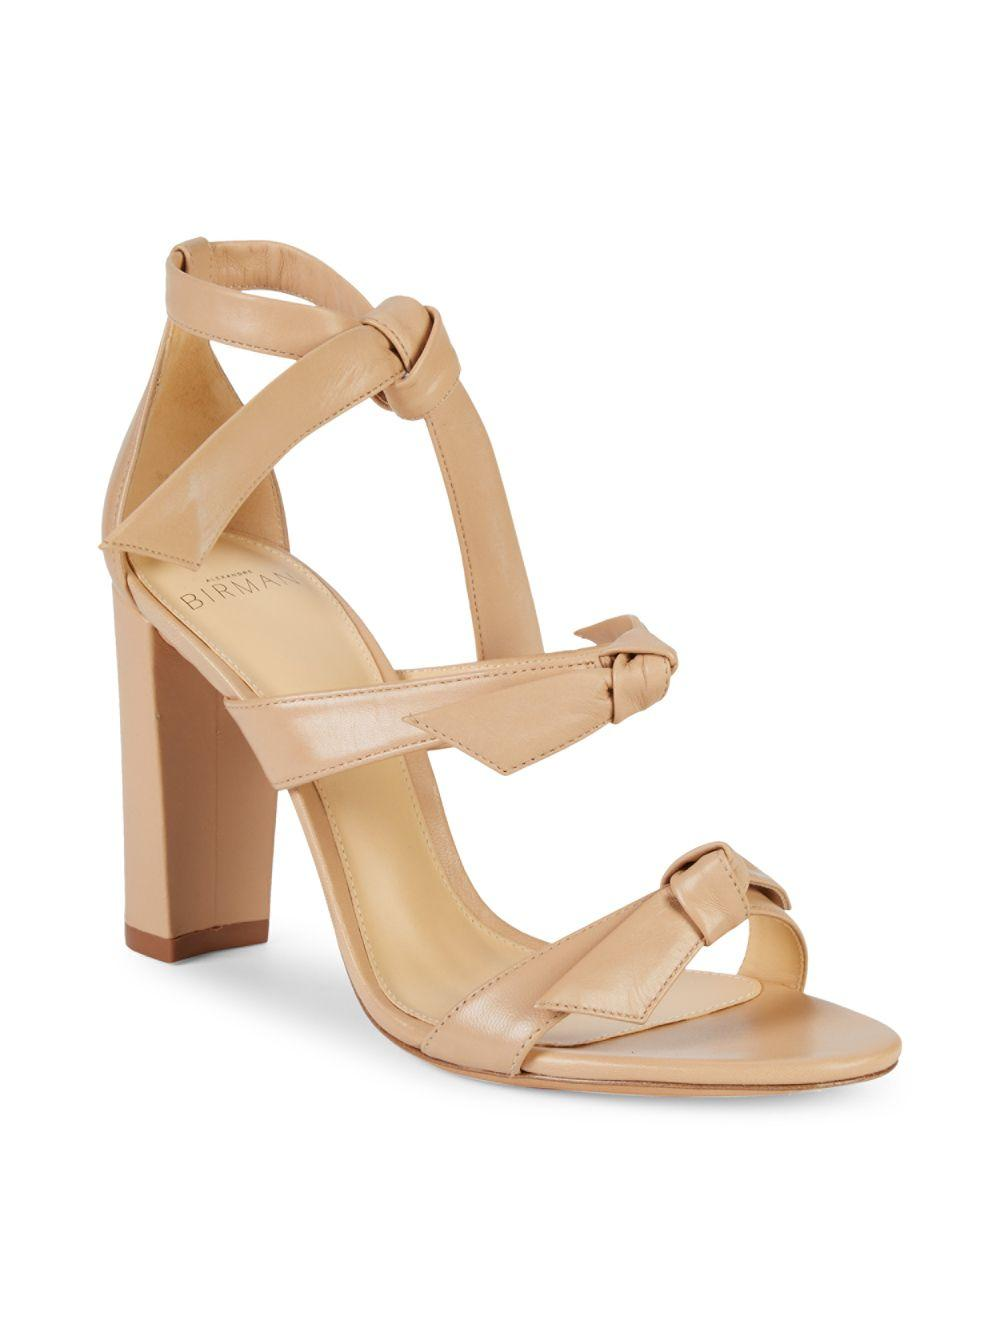 0ec38a6dabf Lyst - Alexandre Birman Giana Leather Block-heel Sandals in Natural